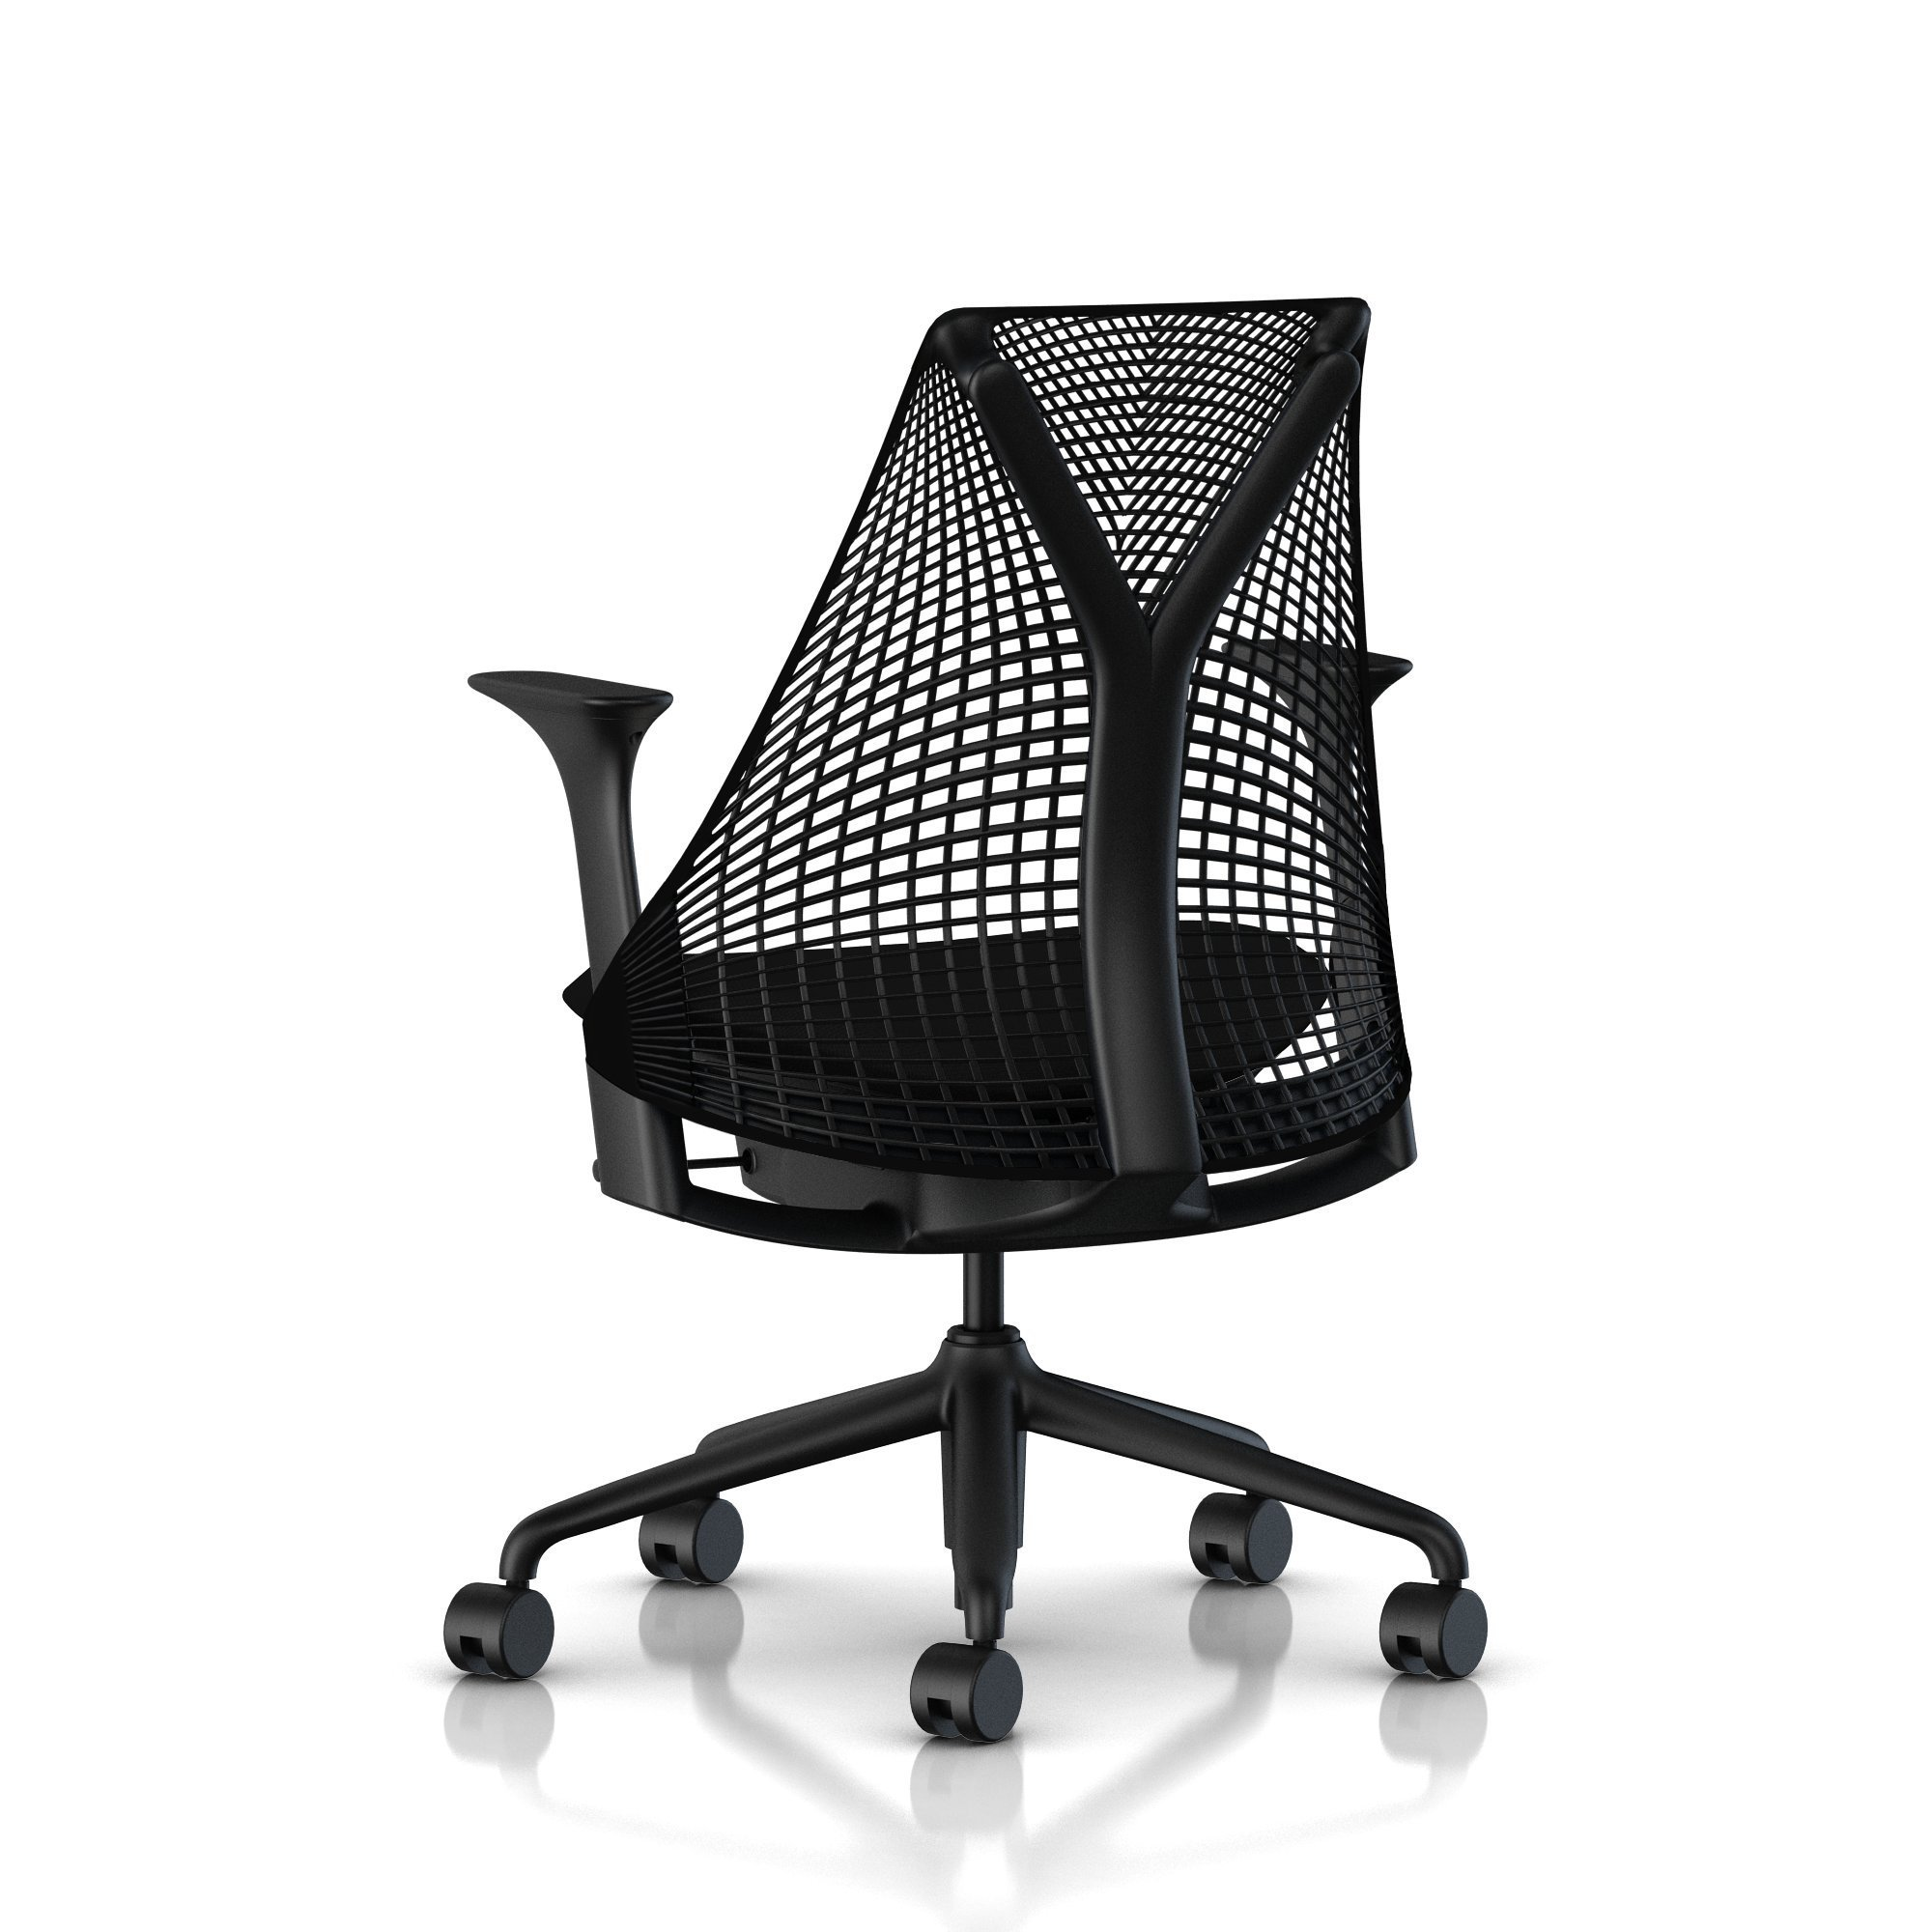 Best office chair 2016 - Herman Miller Chair Is The Most Budget Friendly Available And Has Does Not Have A Lot